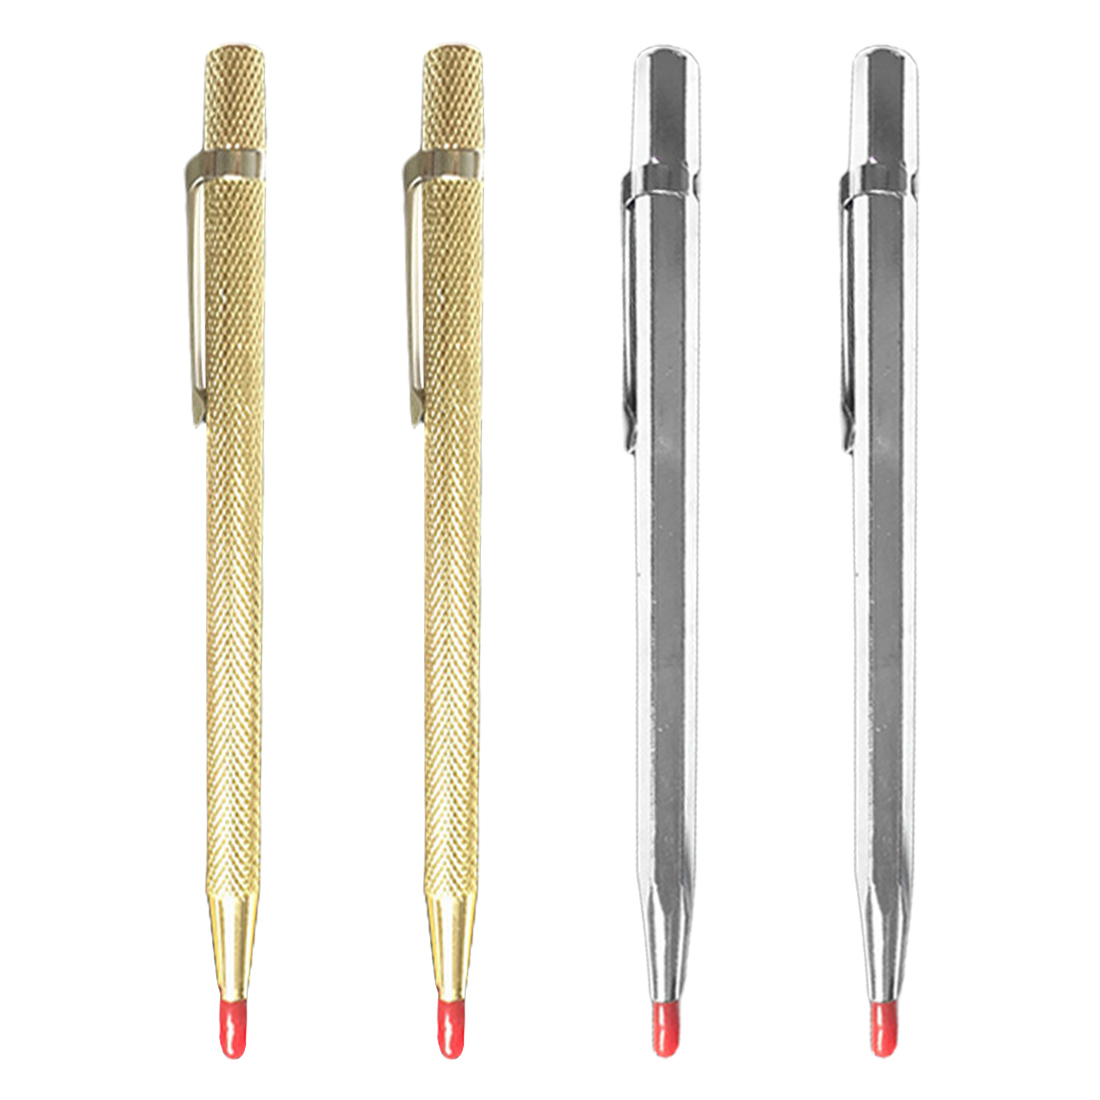 Diamond Glass Cutter Carbide Scriber Hard Metal Tile Cutting Machine Lettering Pen Engraver Glass Knife Scriber Cutting Tool